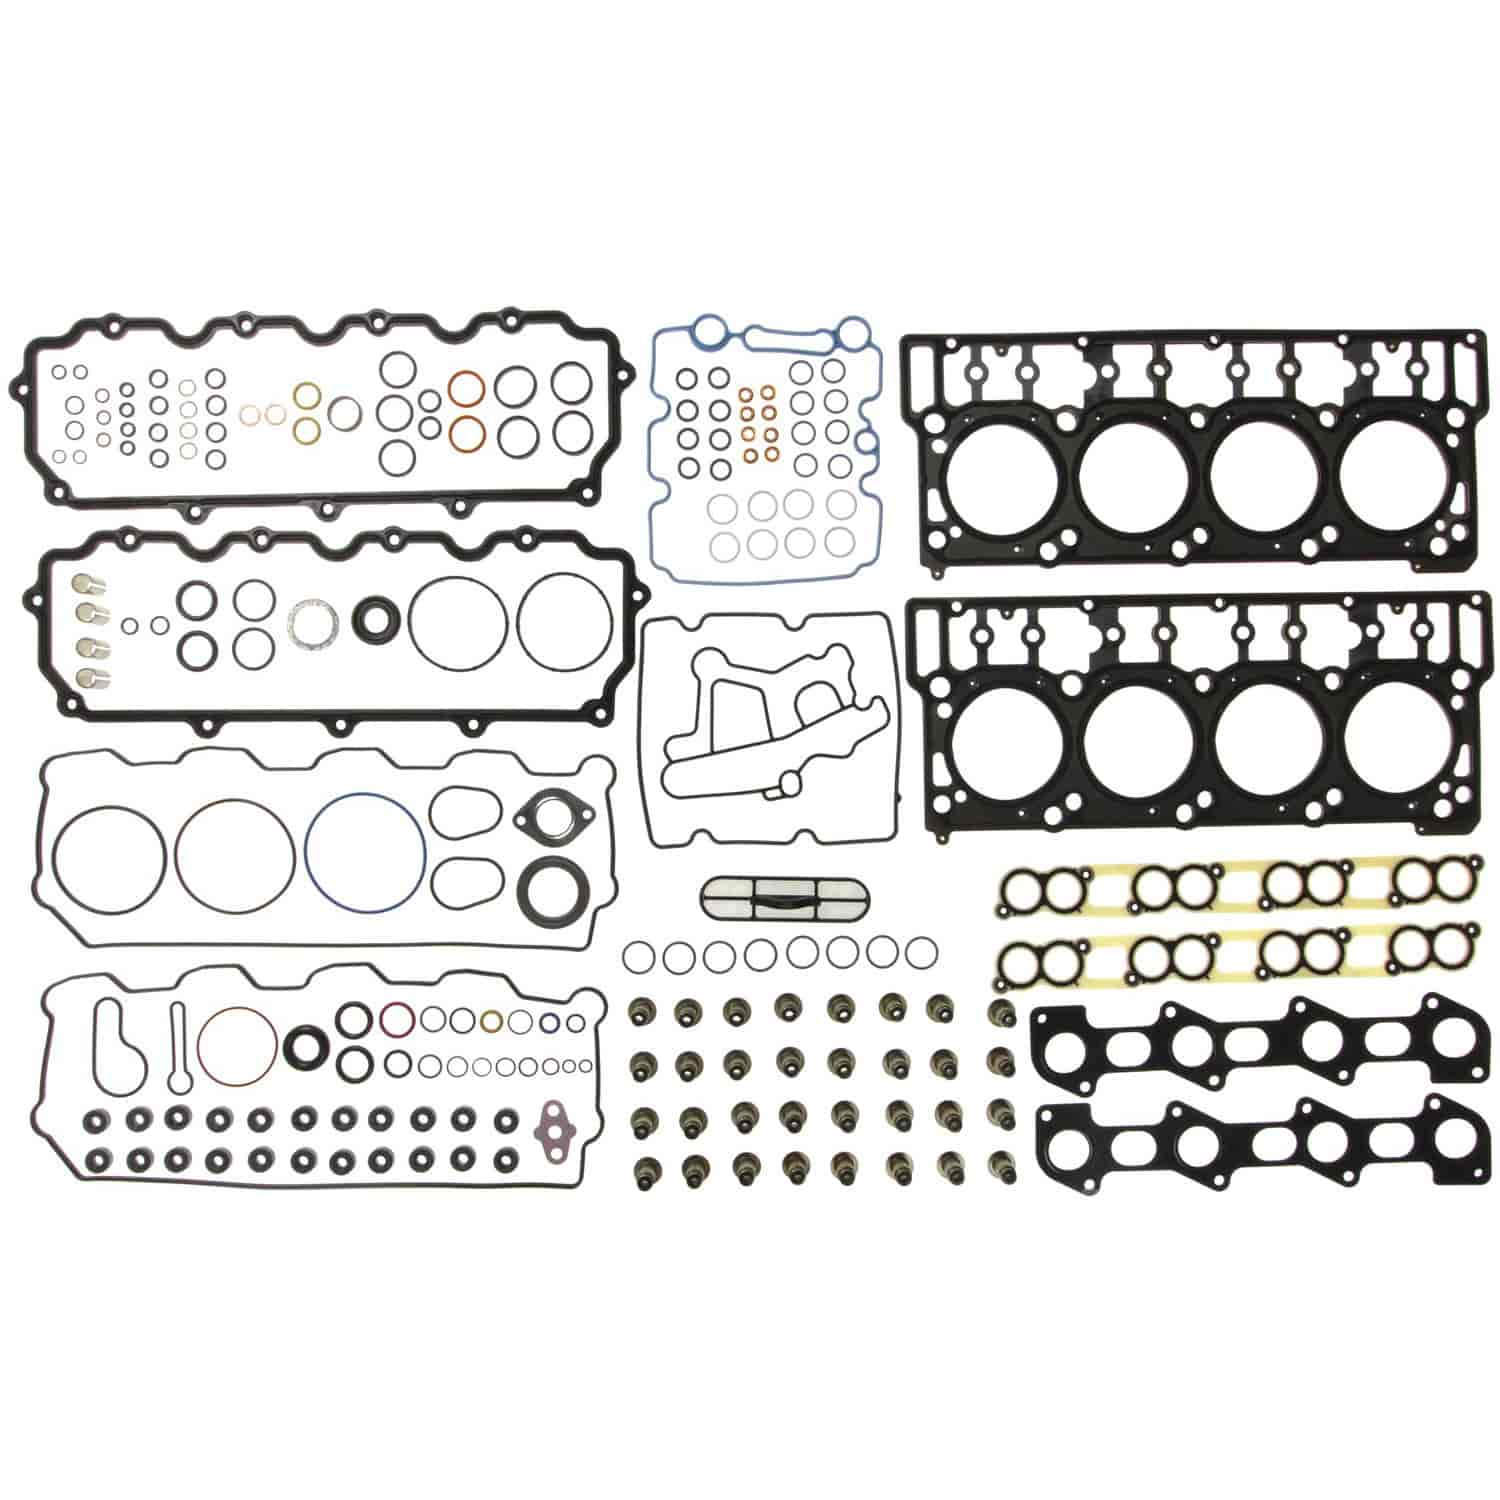 Clevite Mahle Hs Head Gasket Set Ford Navistar Powerstrokesel V8 6 0l With